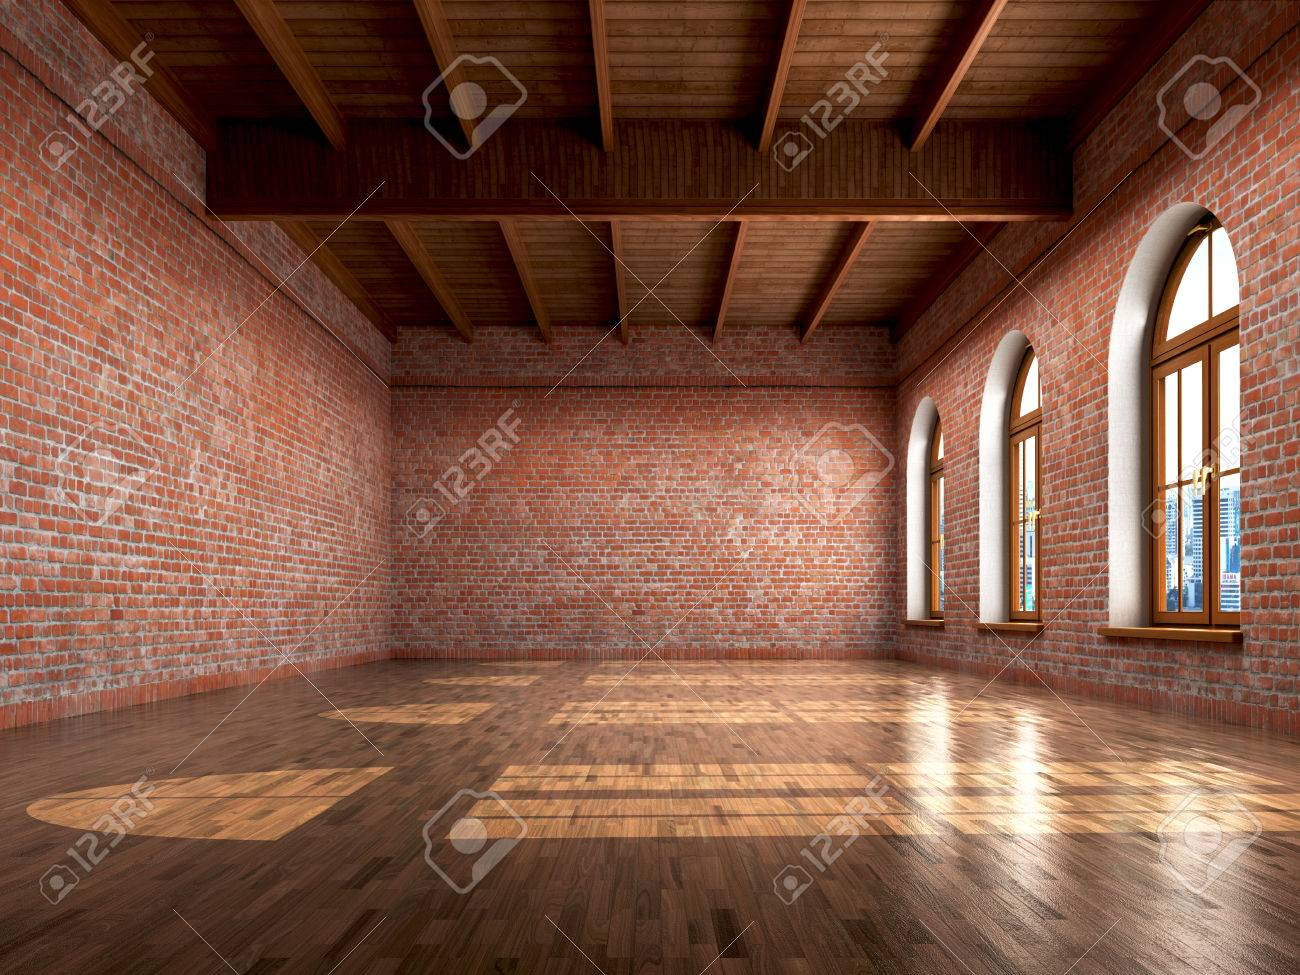 Empty Room With Rustic Finishes Of A Residential Interior Or Office Space 3d Illustration Stock